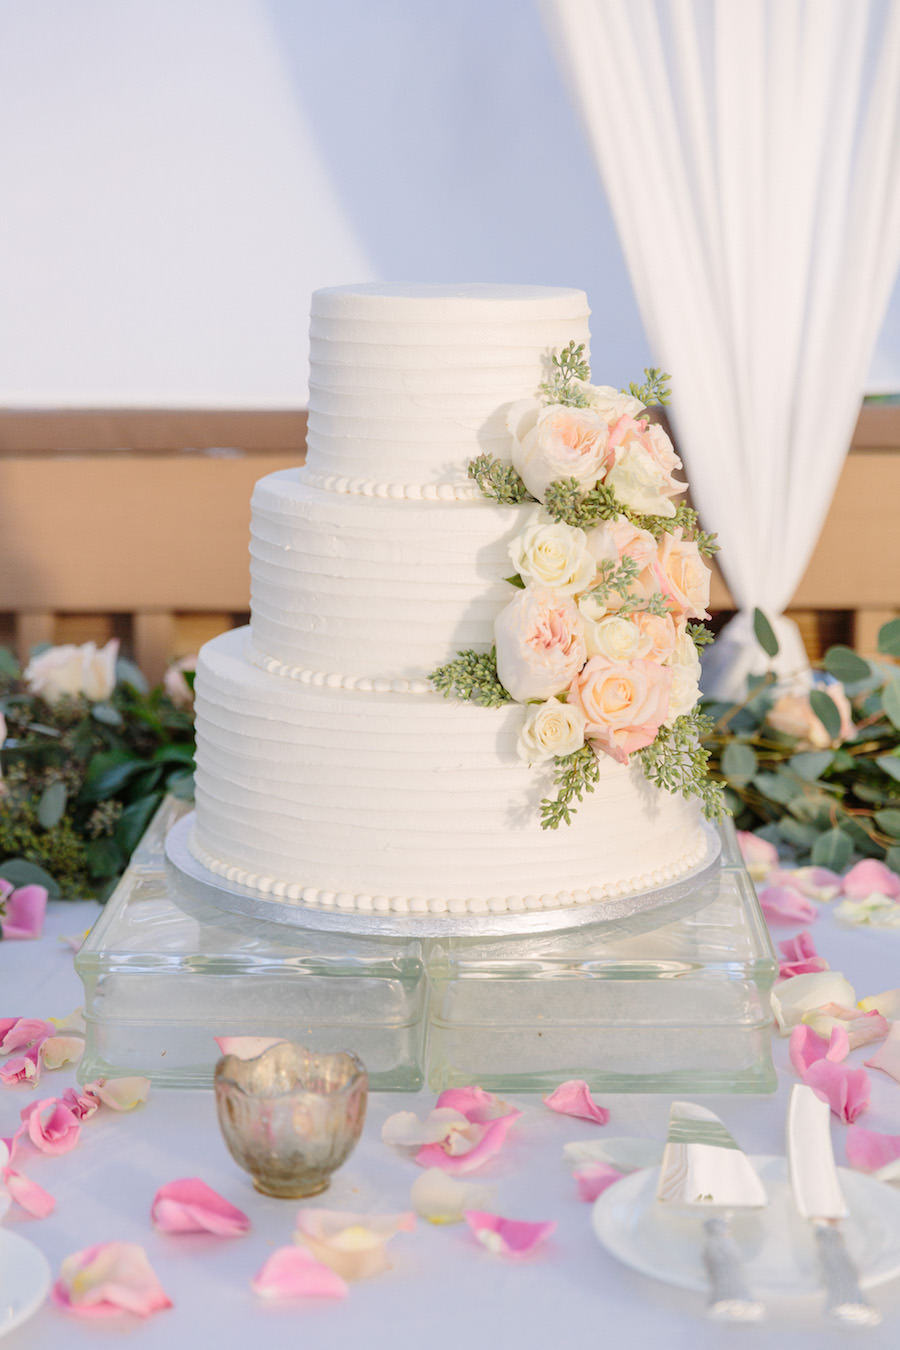 Three Tier Round White Wedding Cake with Real Blush and Ivory Ranunculus and Greenery on Clear Glass Cake Stand with Rose Petals